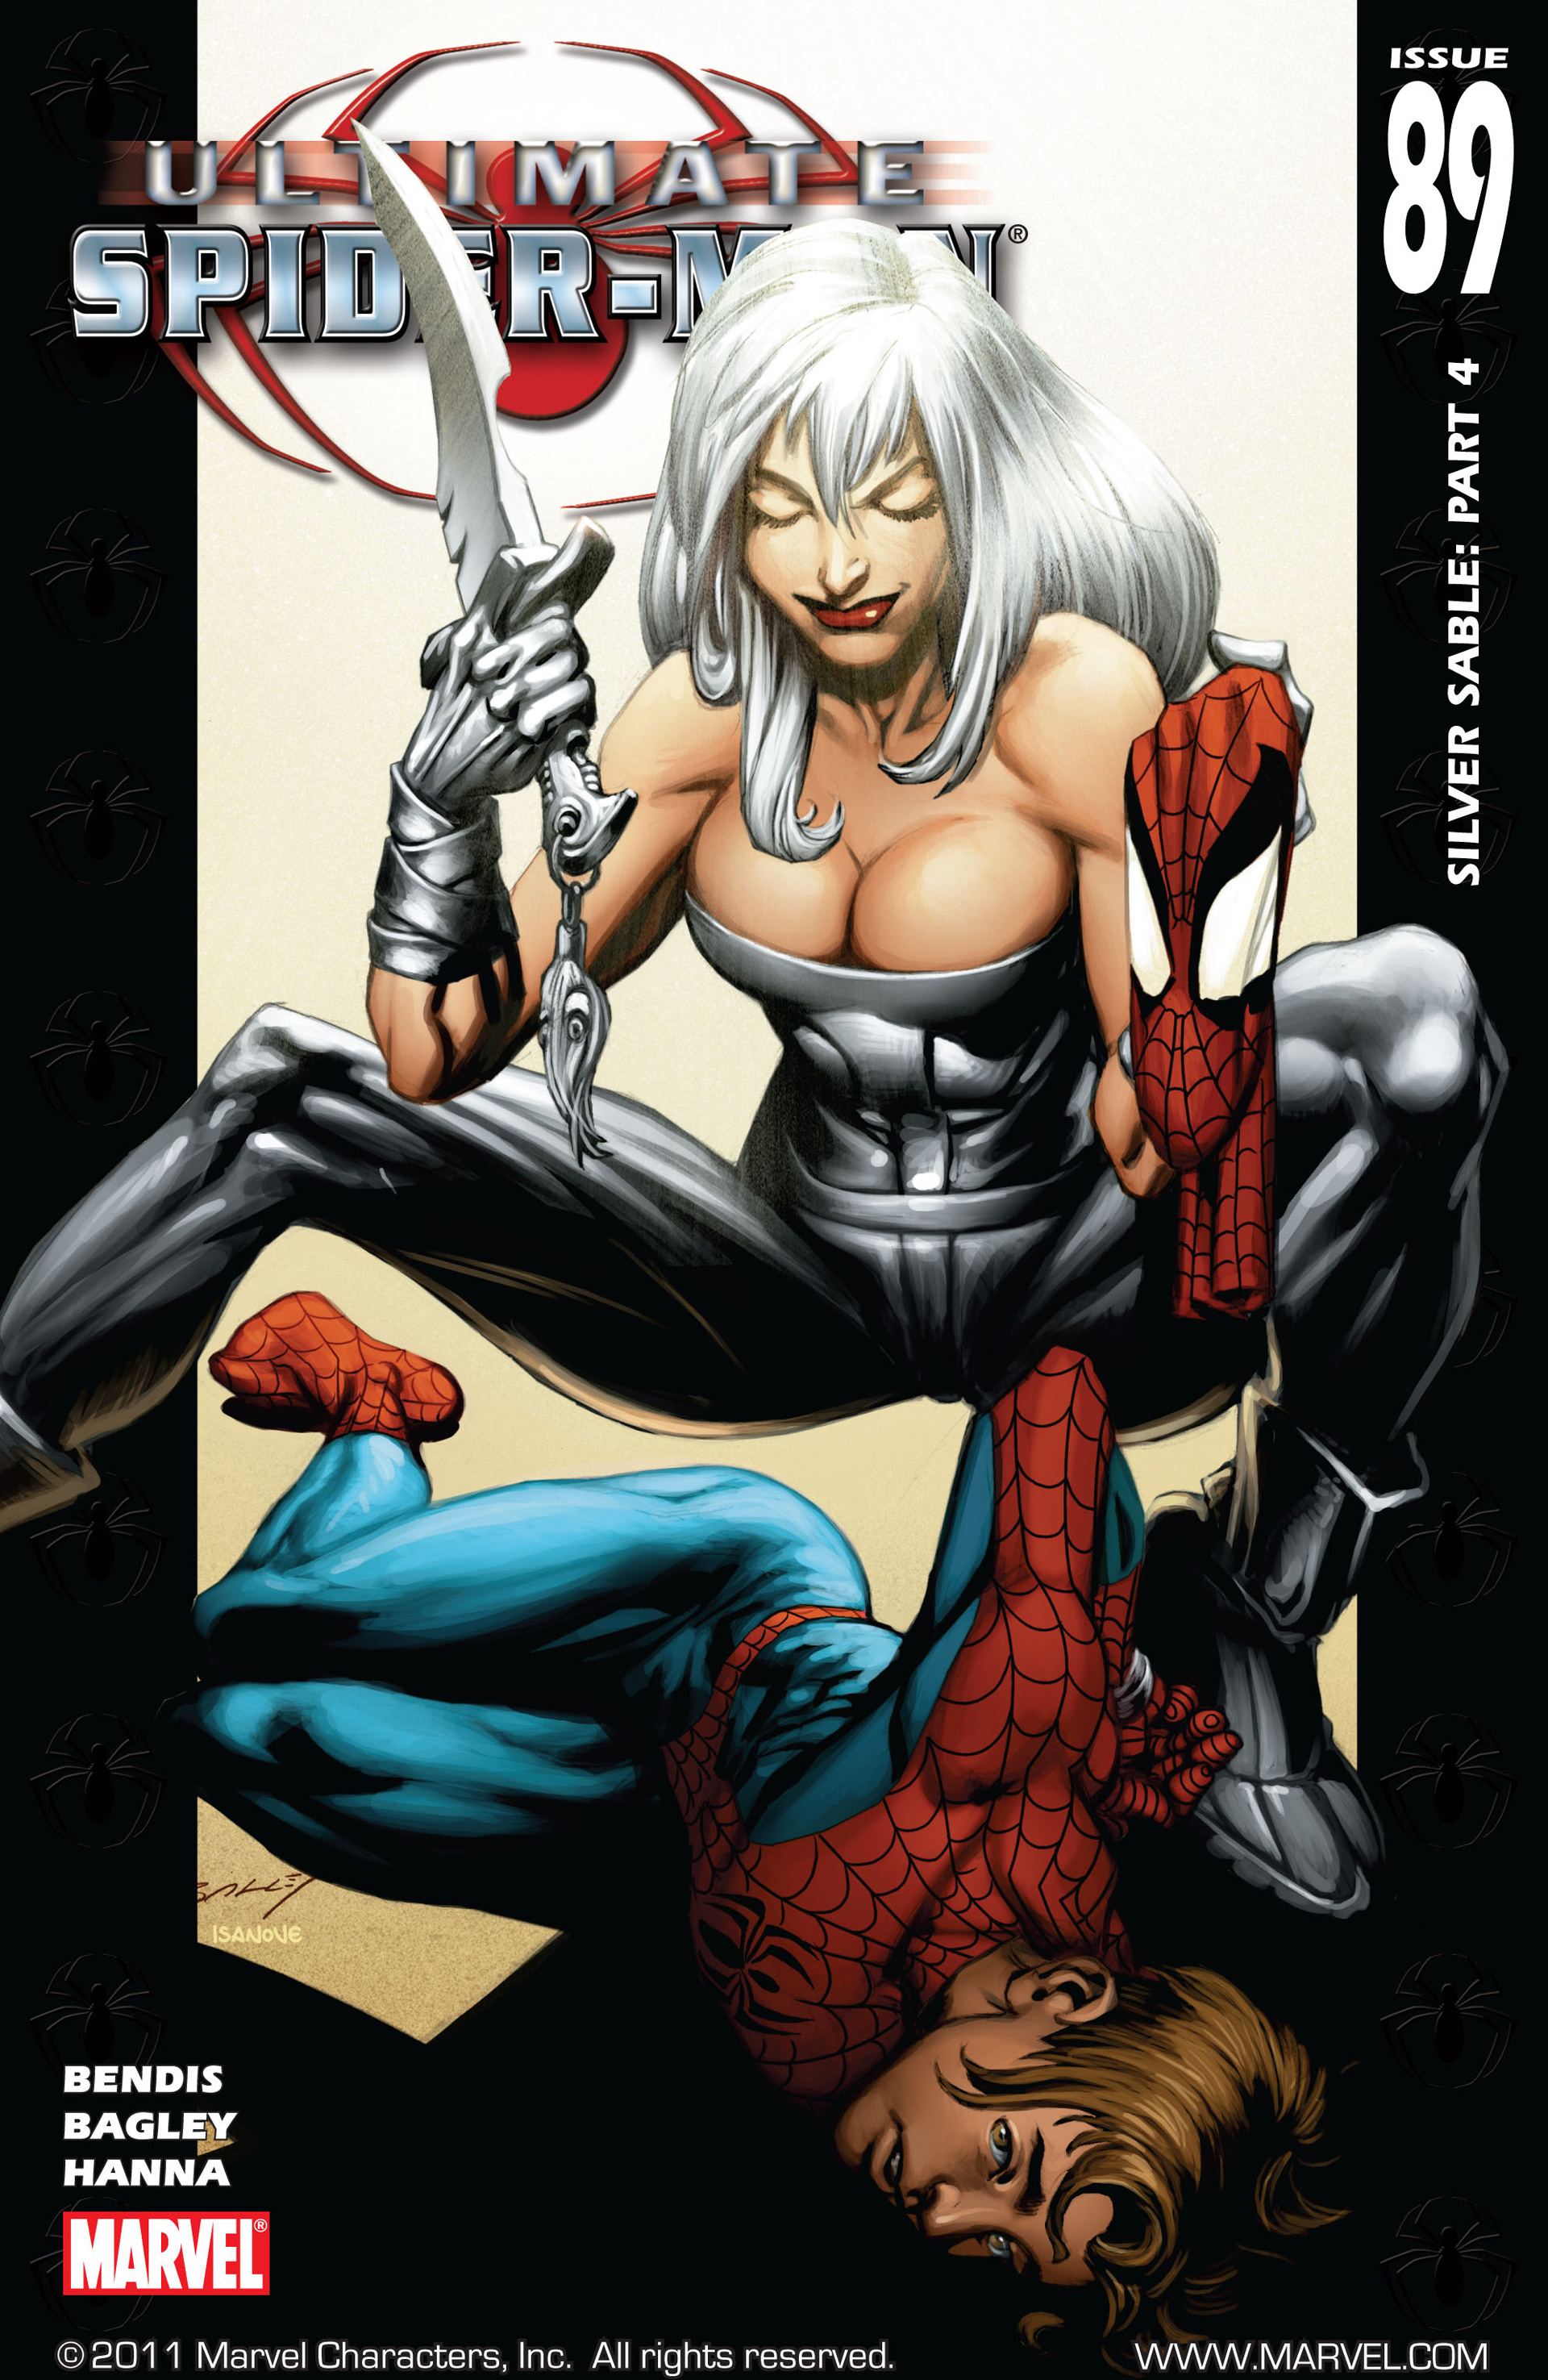 Ultimate Spider-Man (2000) issue 89 - Page 1